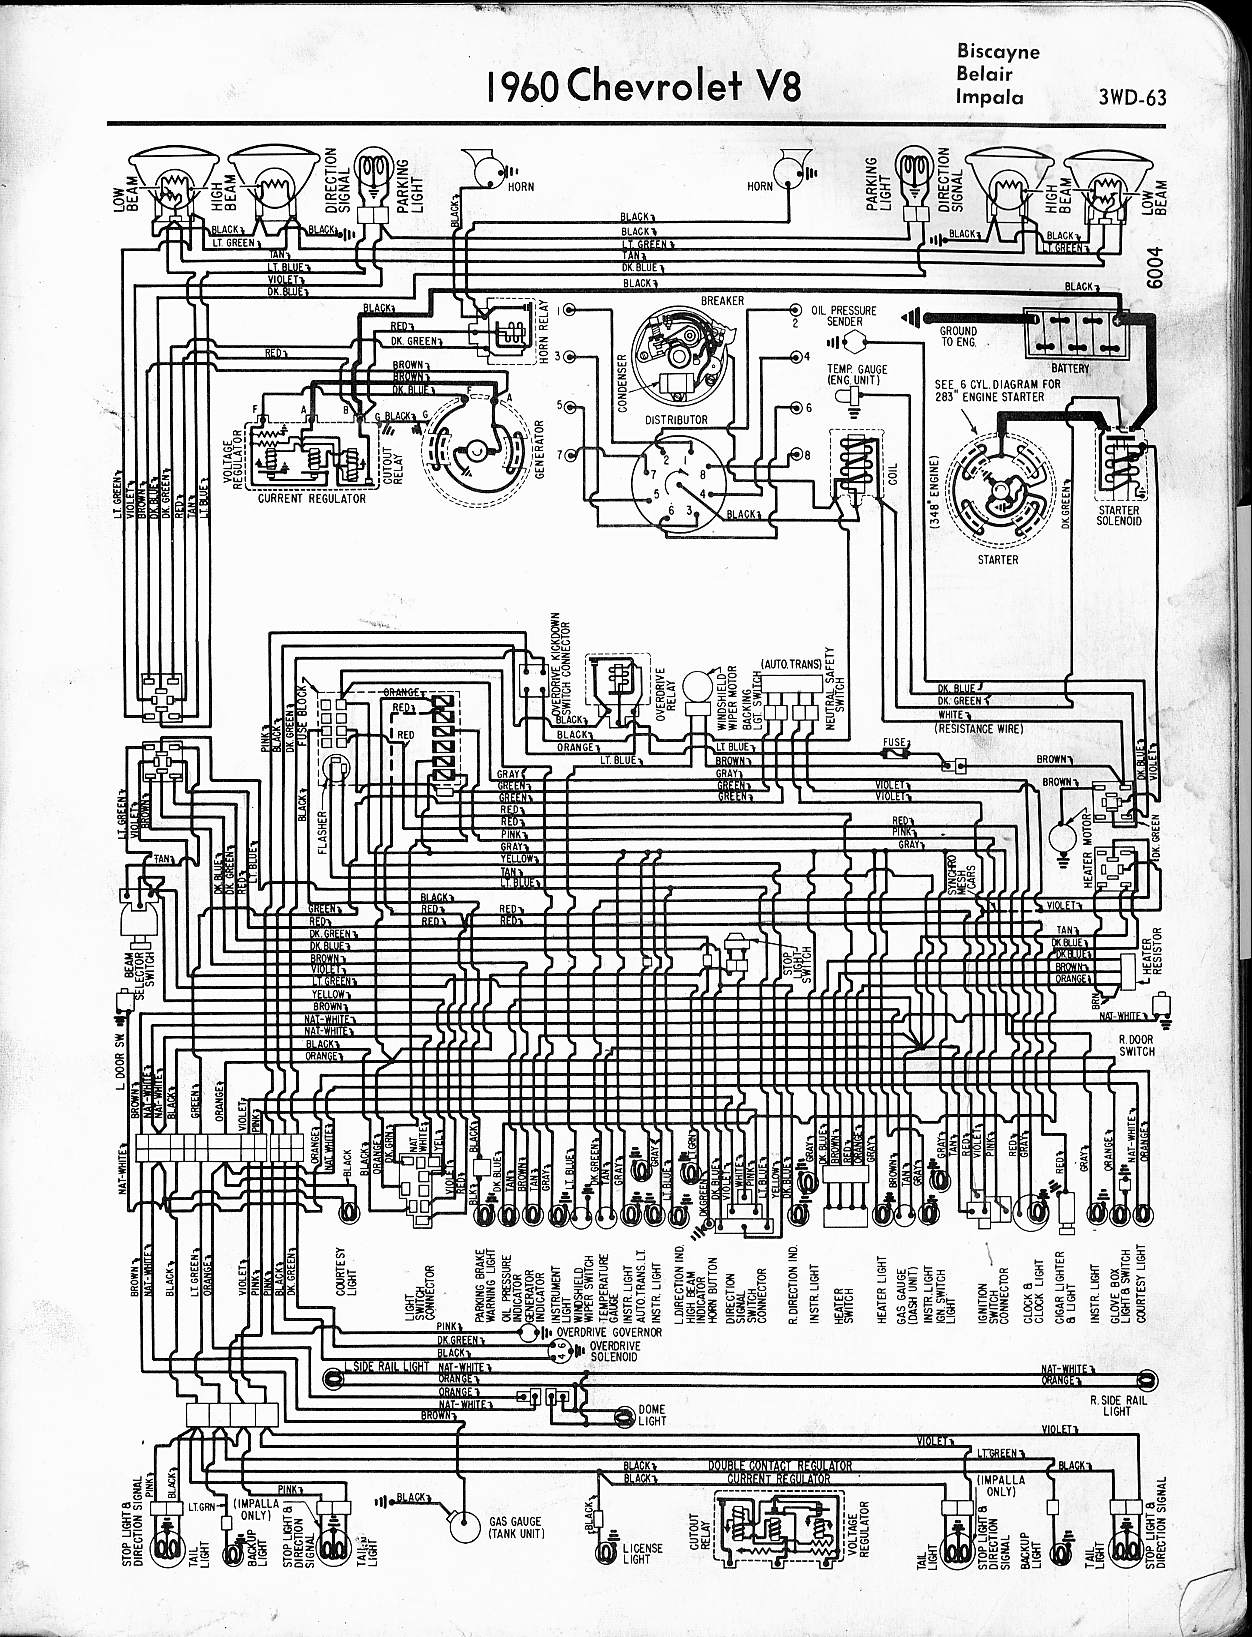 MWireChev60_3WD 063 57 65 chevy wiring diagrams 1962 impala wiring diagram at honlapkeszites.co